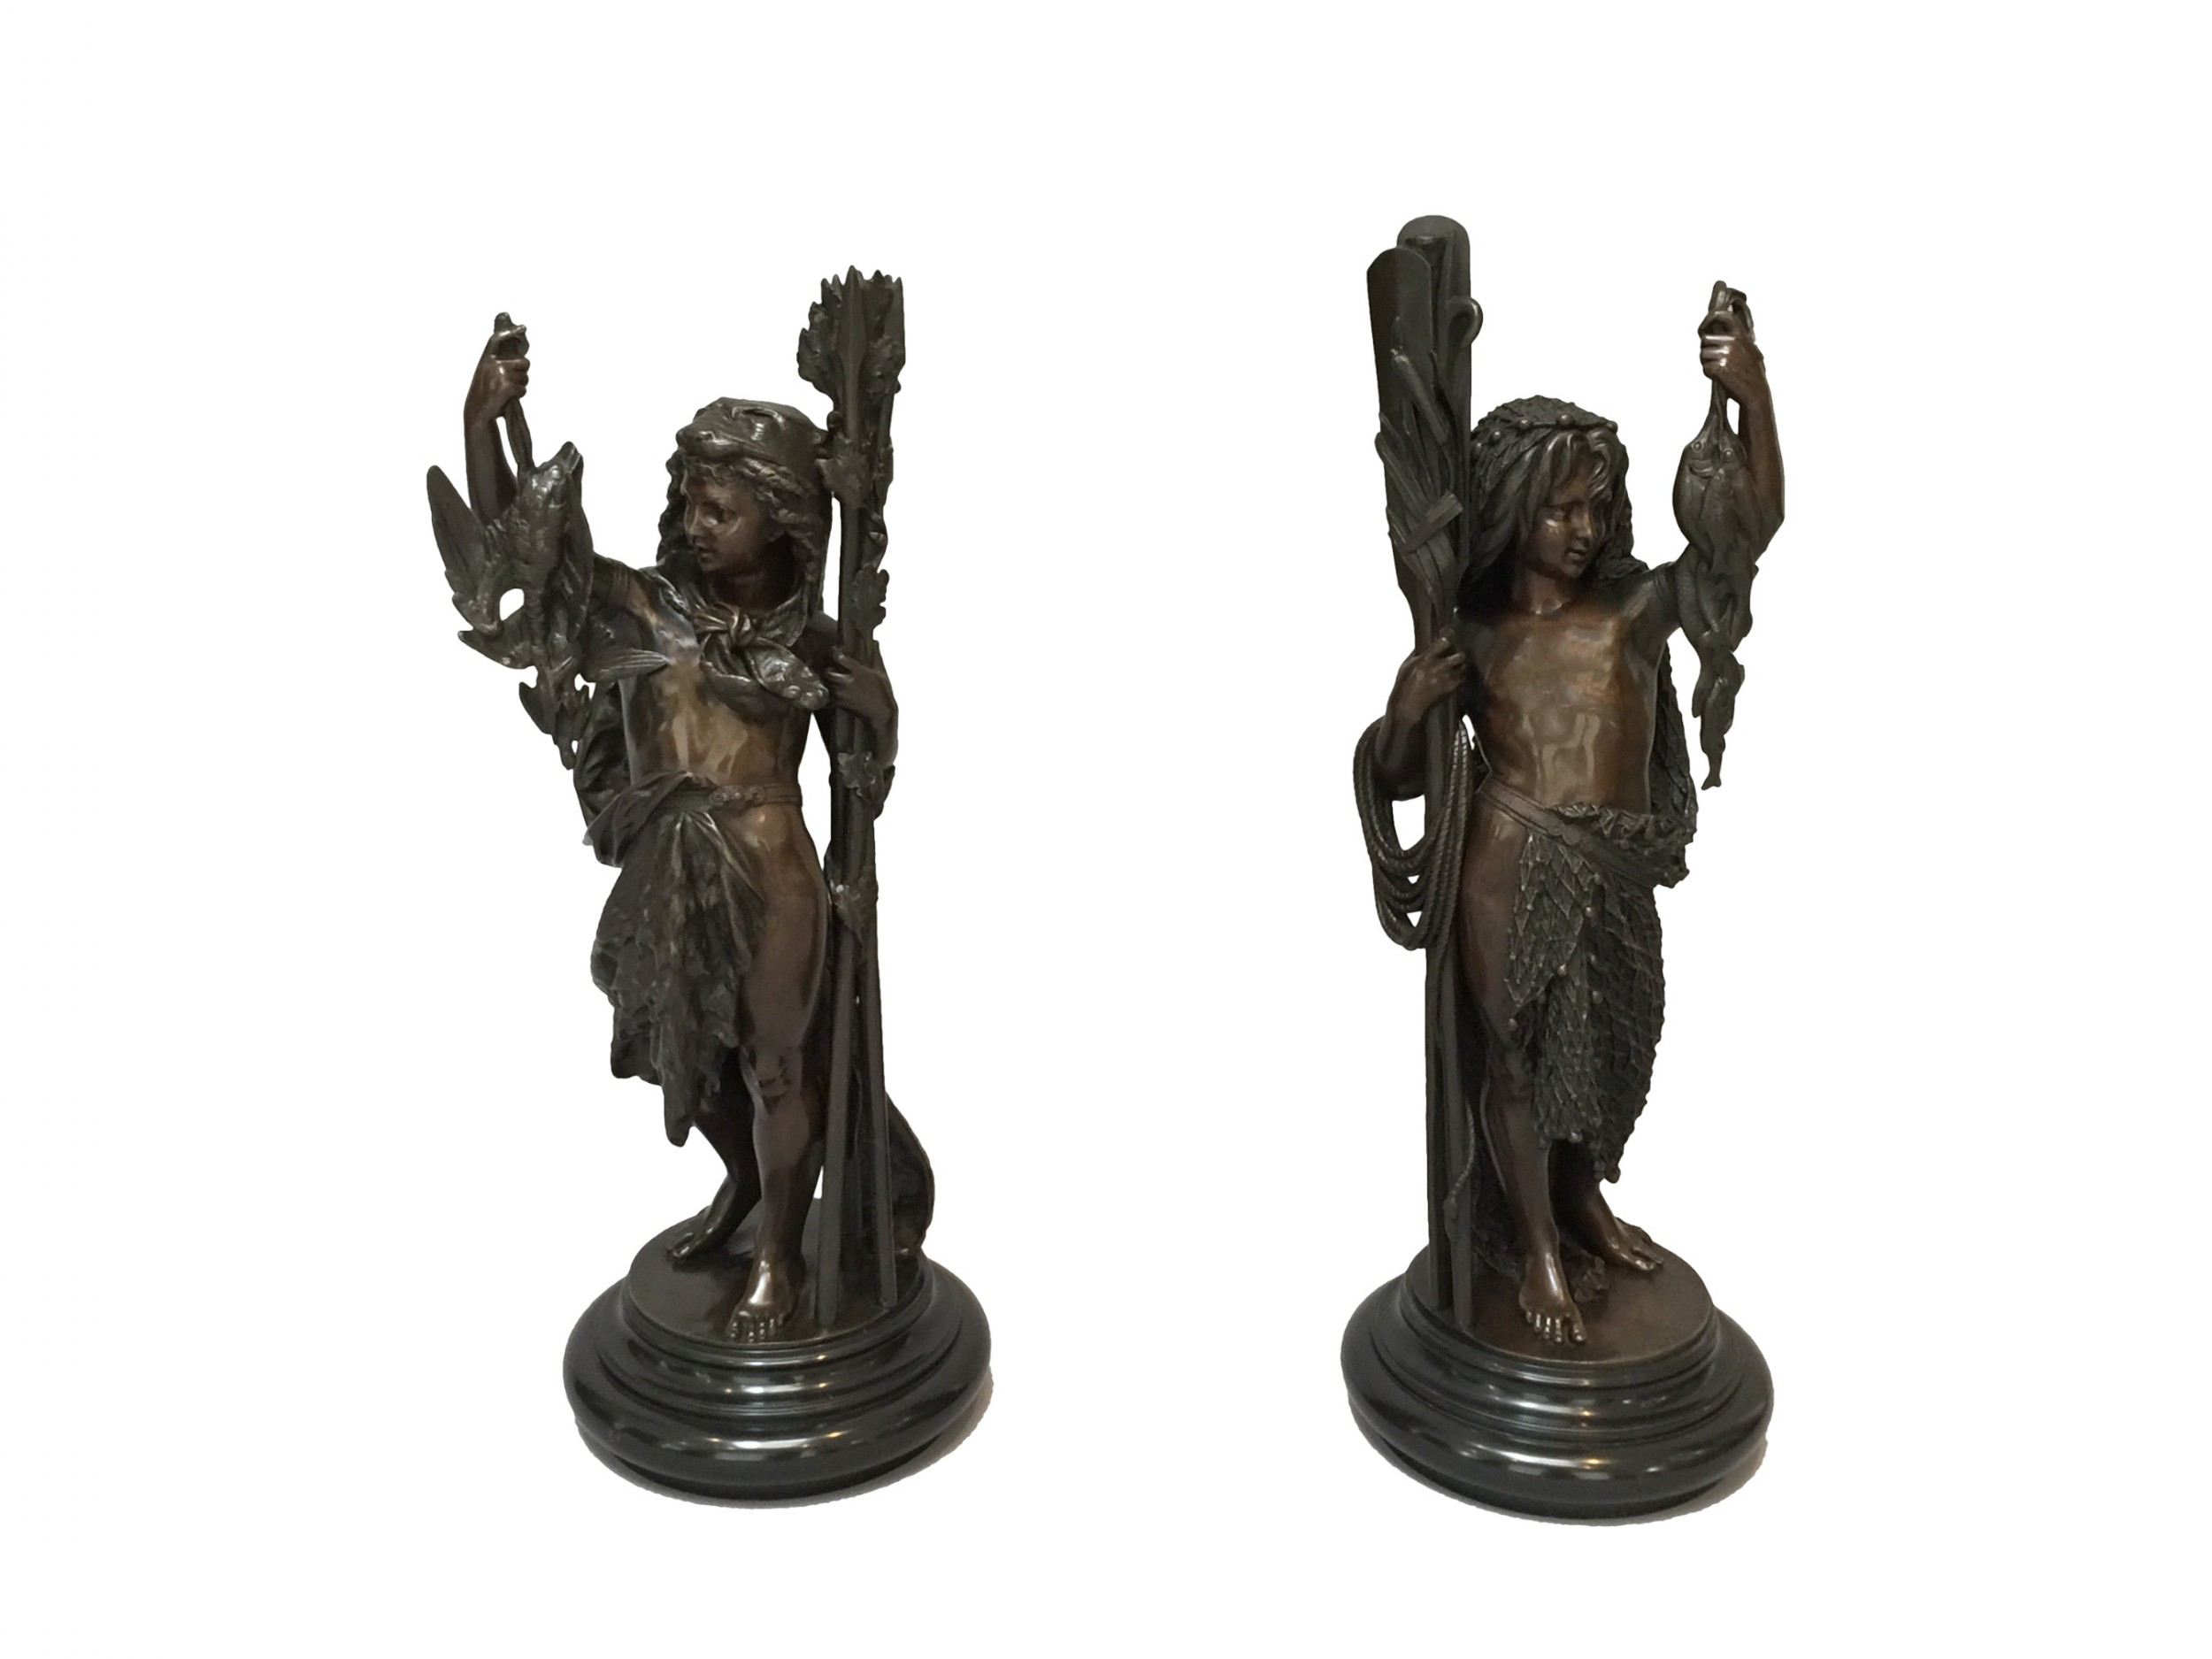 a fine pair of french bronzes after albert carrierbelleuse fisher boy companion